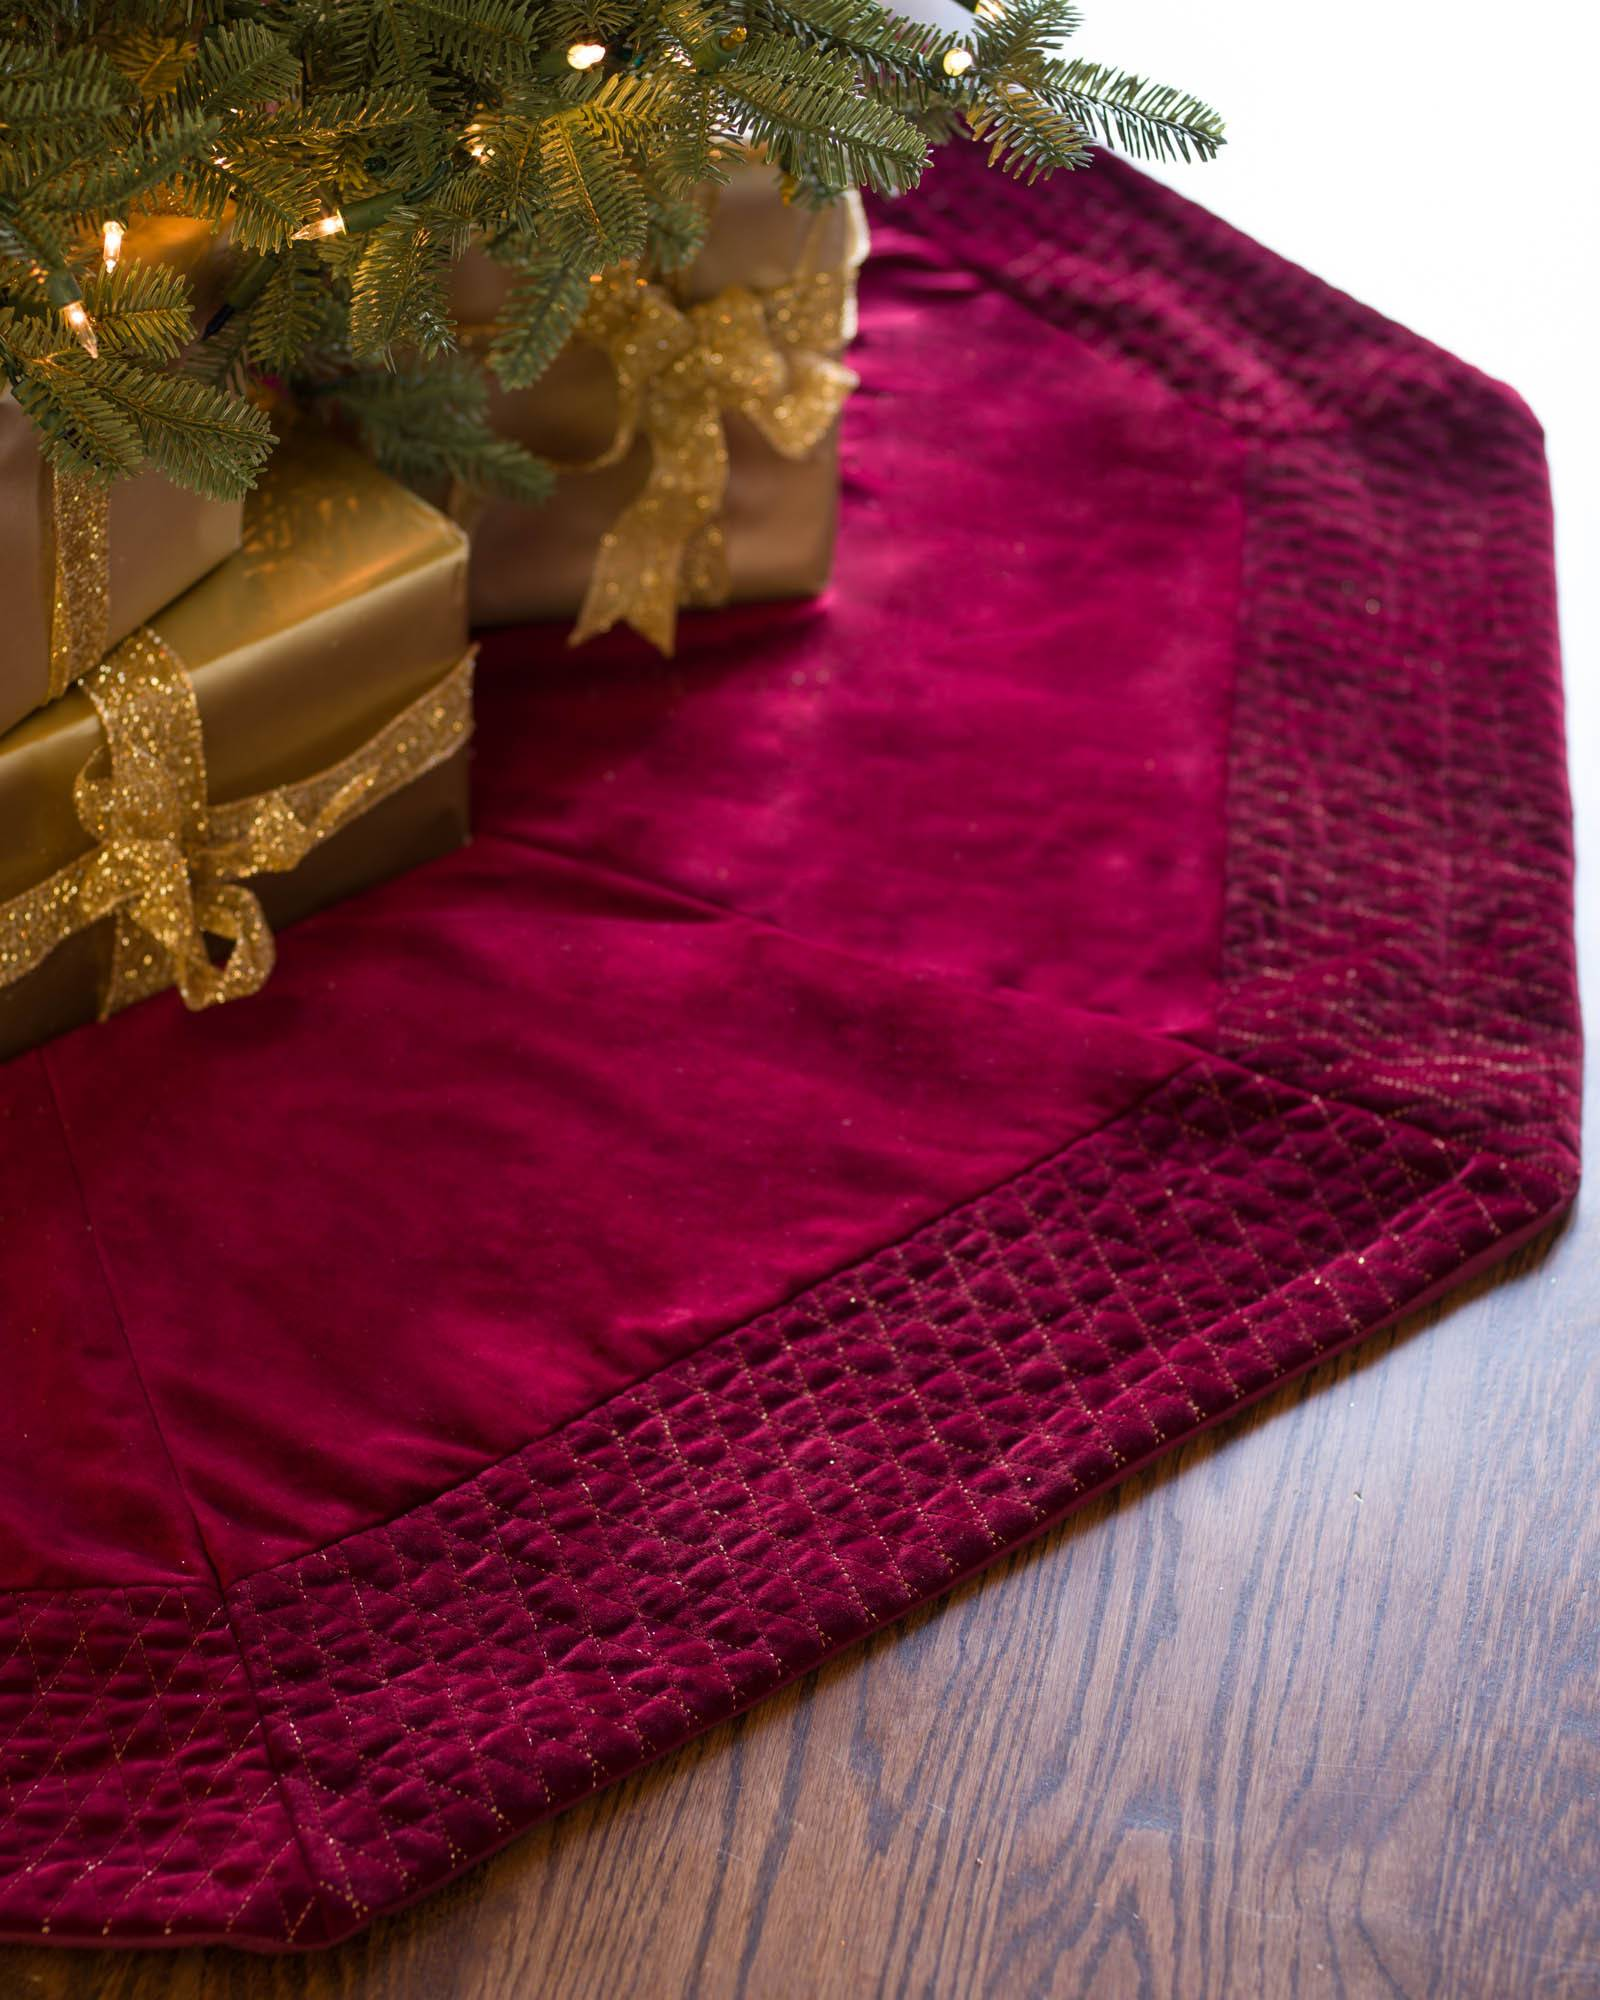 Florentine Quilted Velvet Tree Skirt Balsam Hill